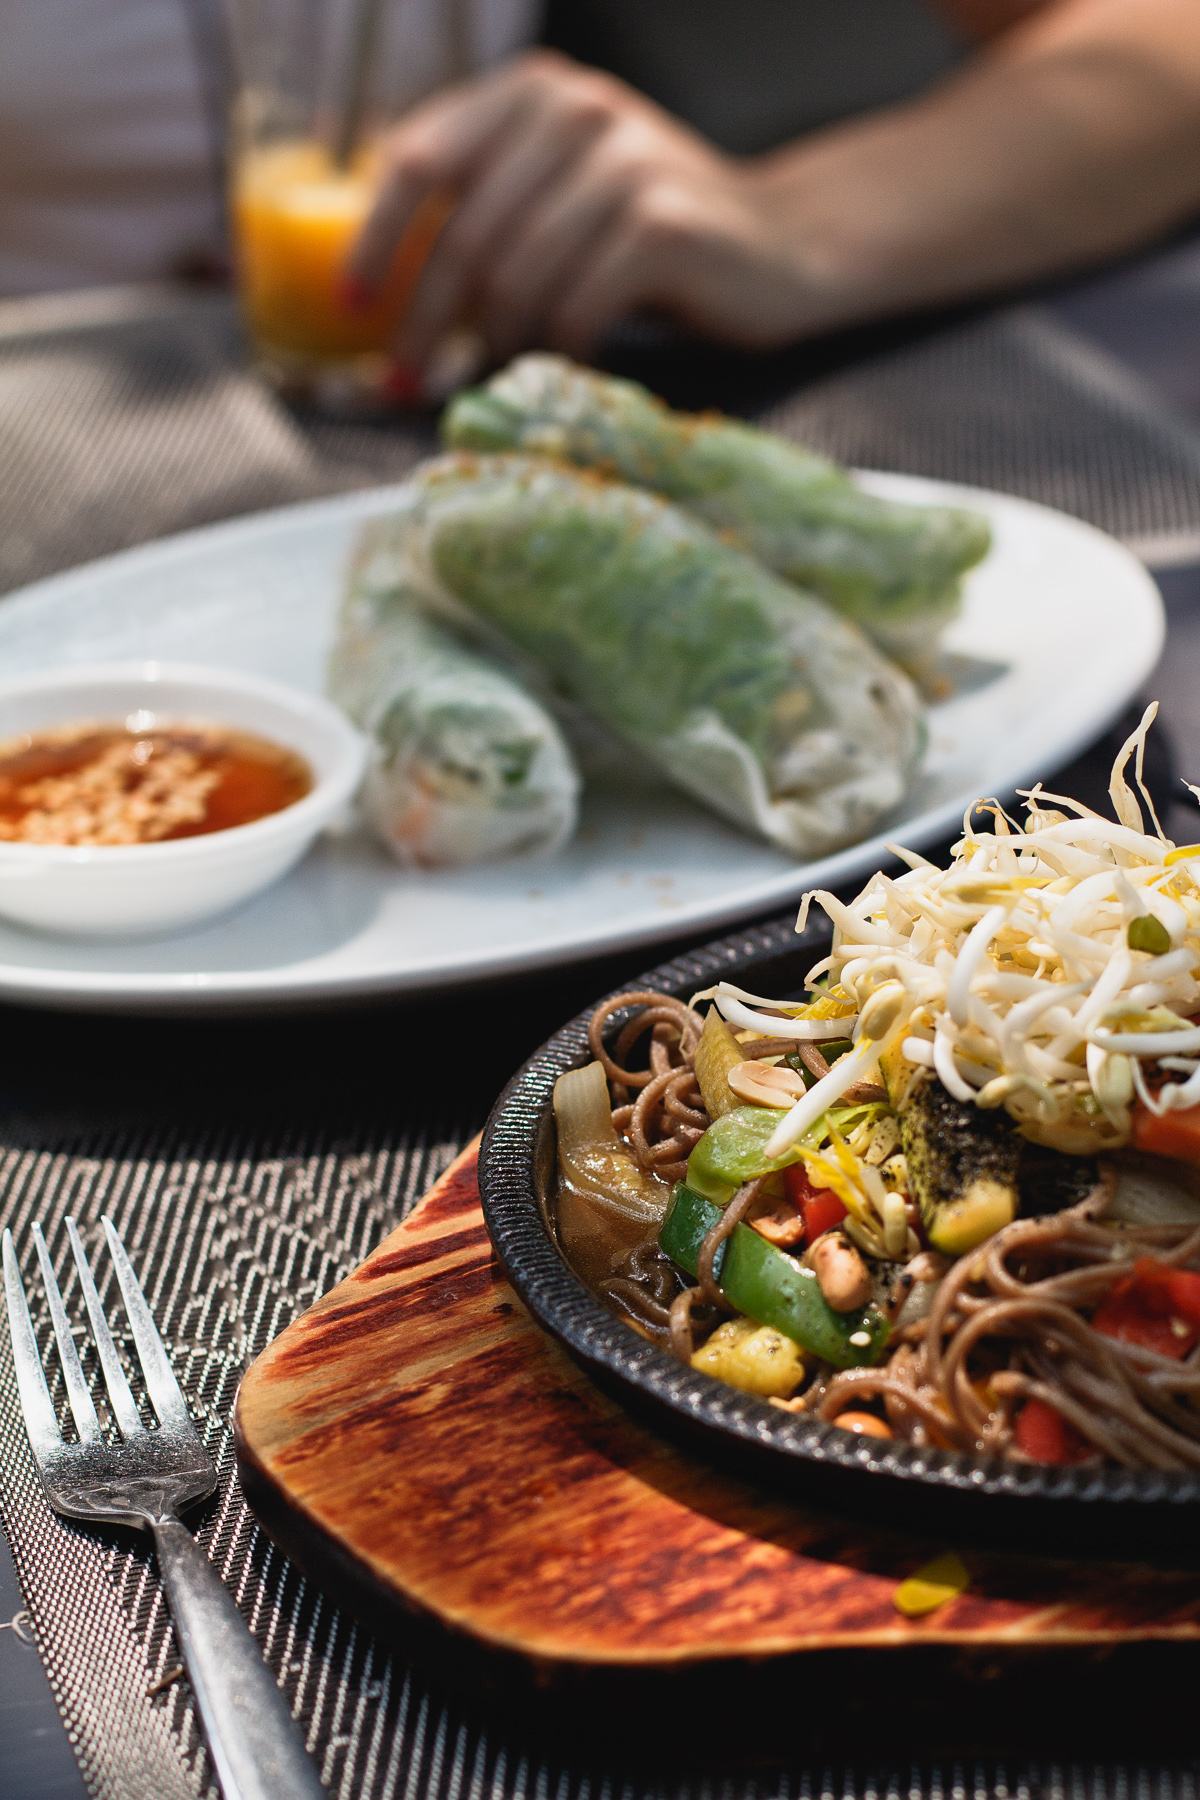 Fresh springrolls and a version of Pad Thai with soba noodles